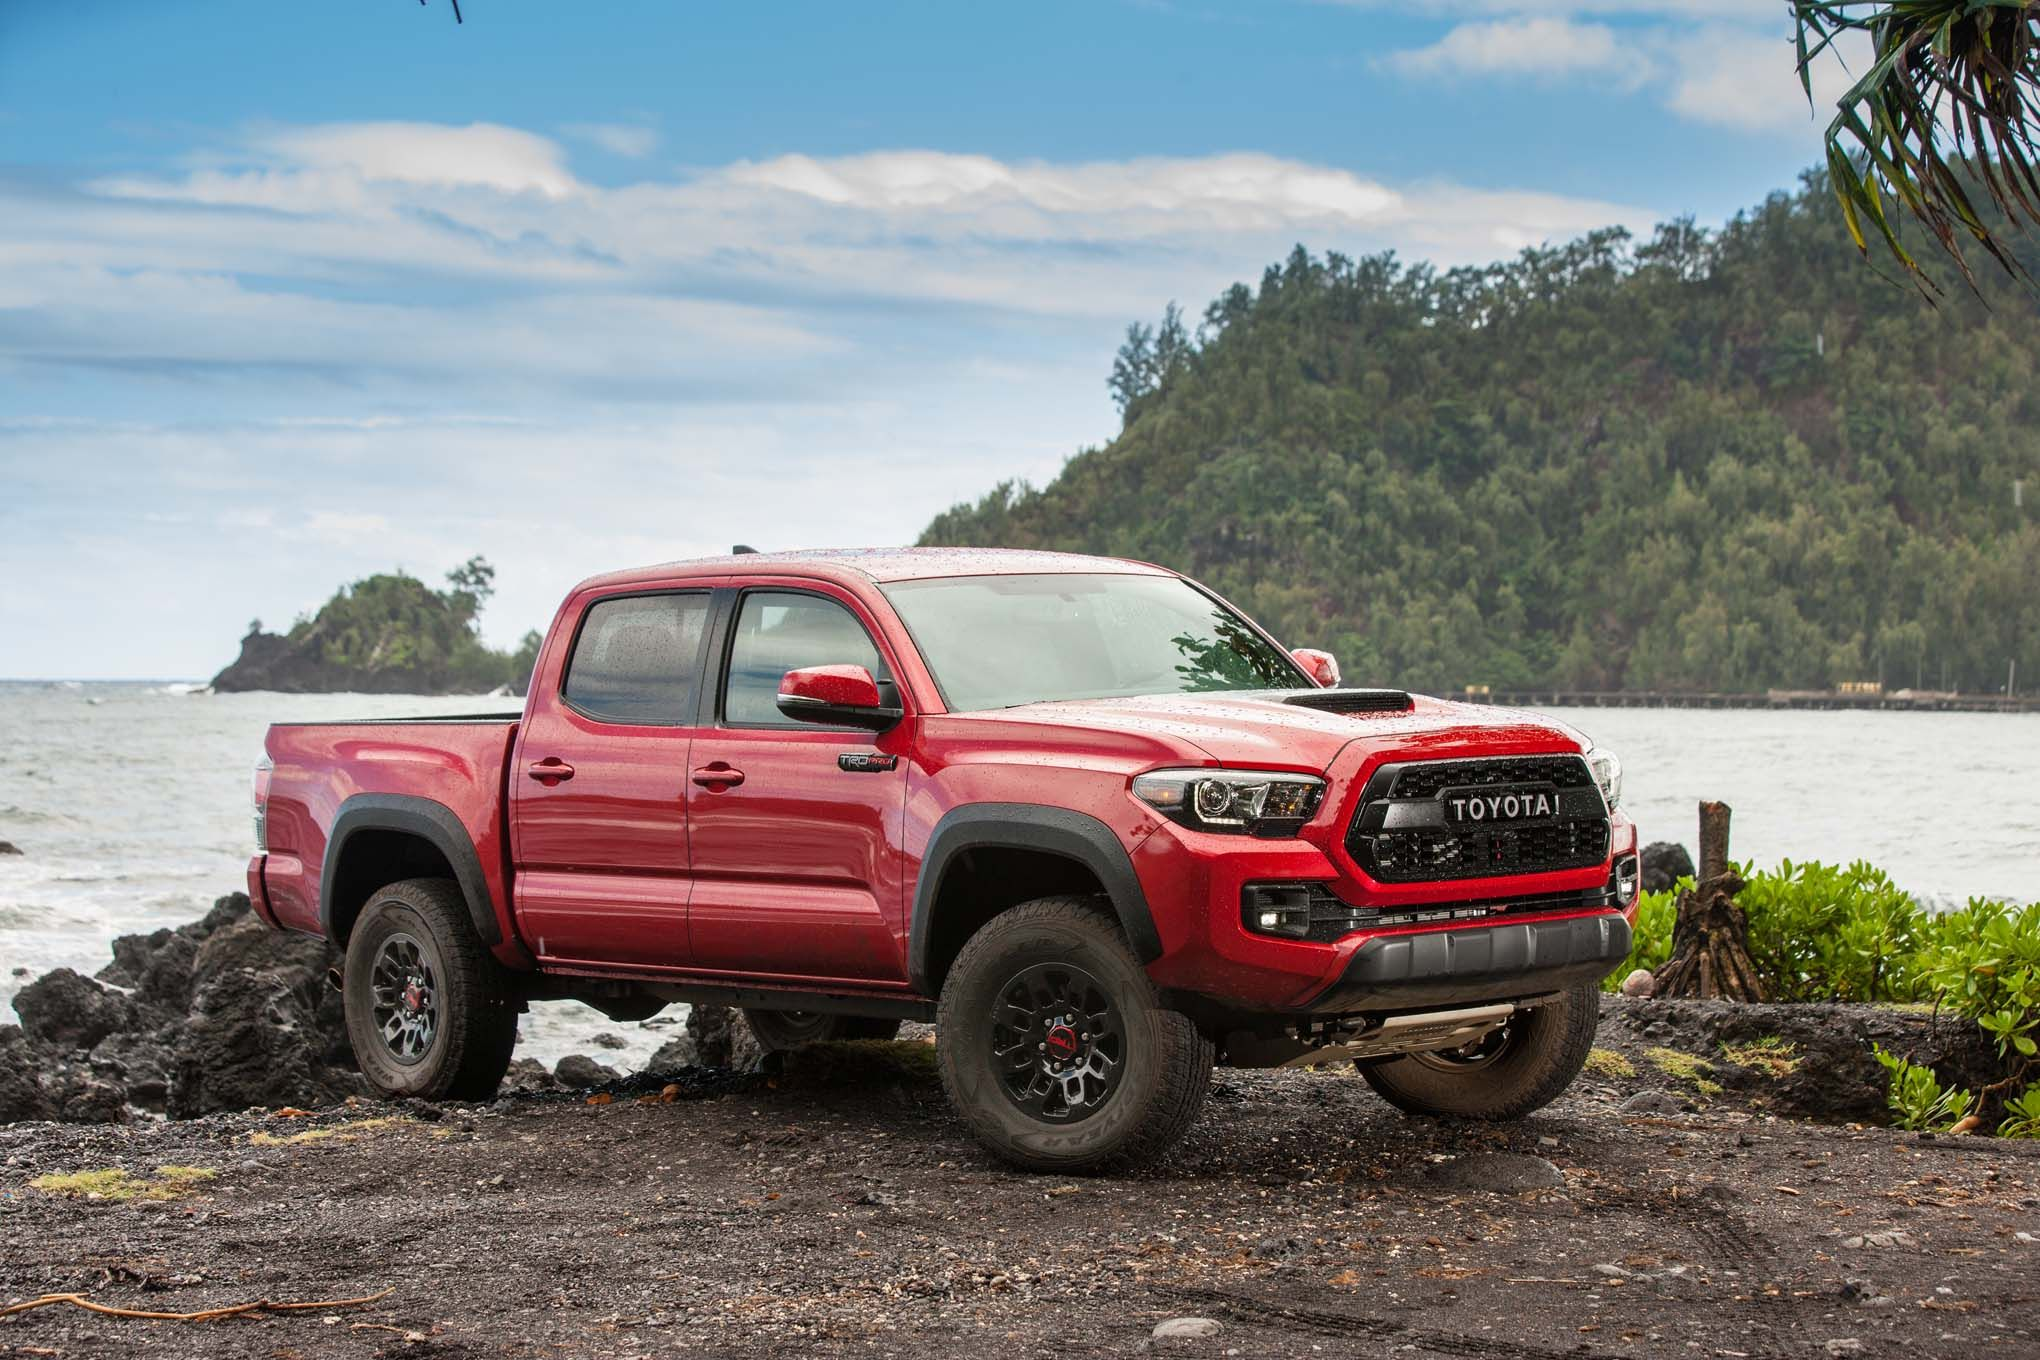 2017 toyota tacoma trd pro off road review motor trend tacoma pinterest toyota tacoma. Black Bedroom Furniture Sets. Home Design Ideas